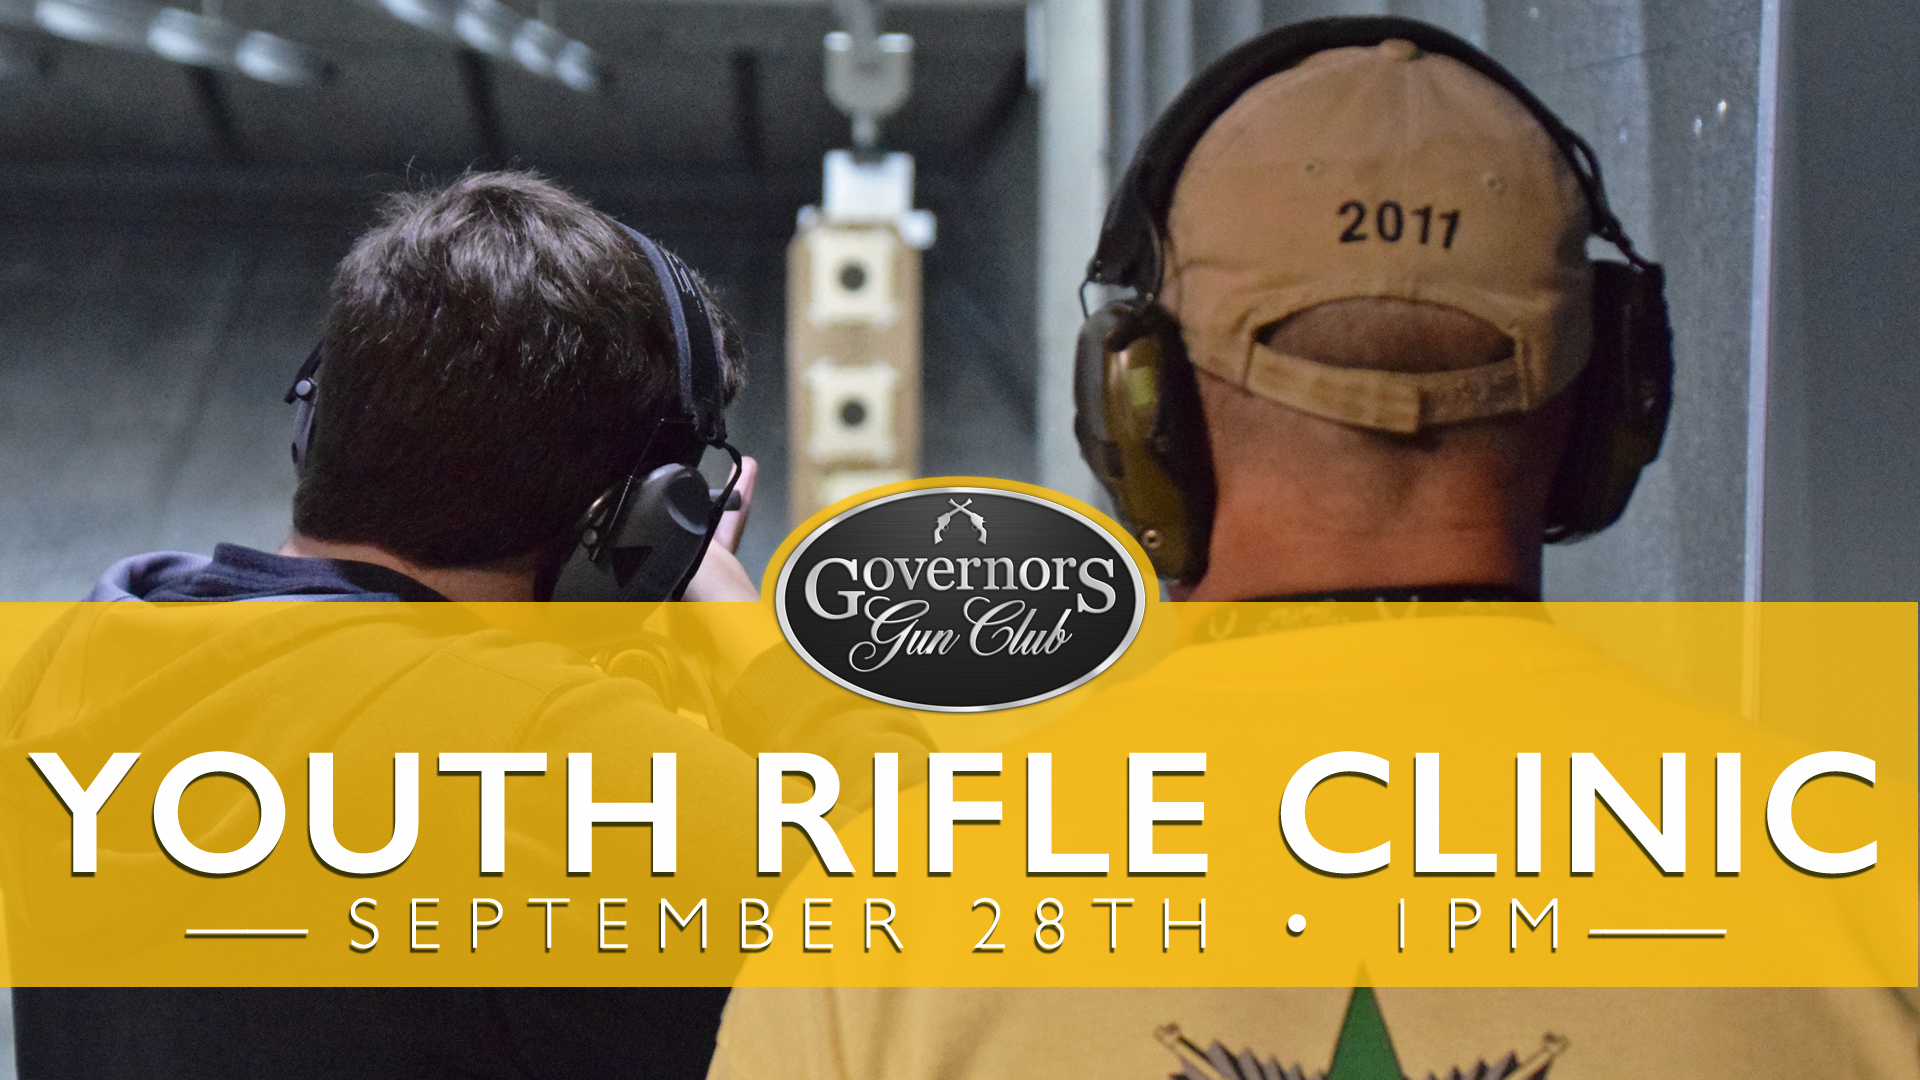 Youth Rifle Clinic @ Governors Gun Club Kennesaw